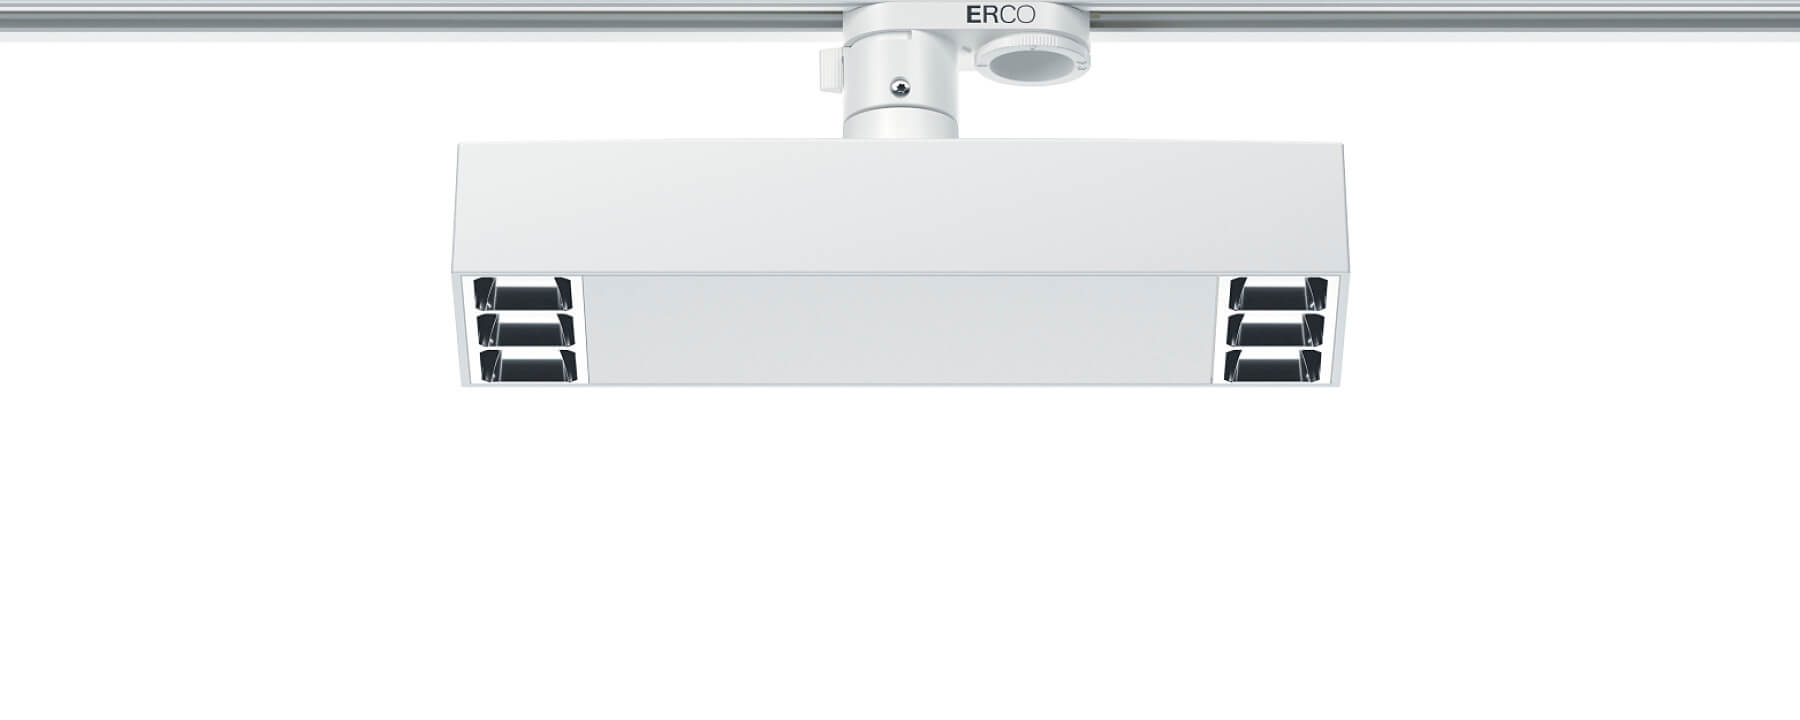 ERCO lighting product compar